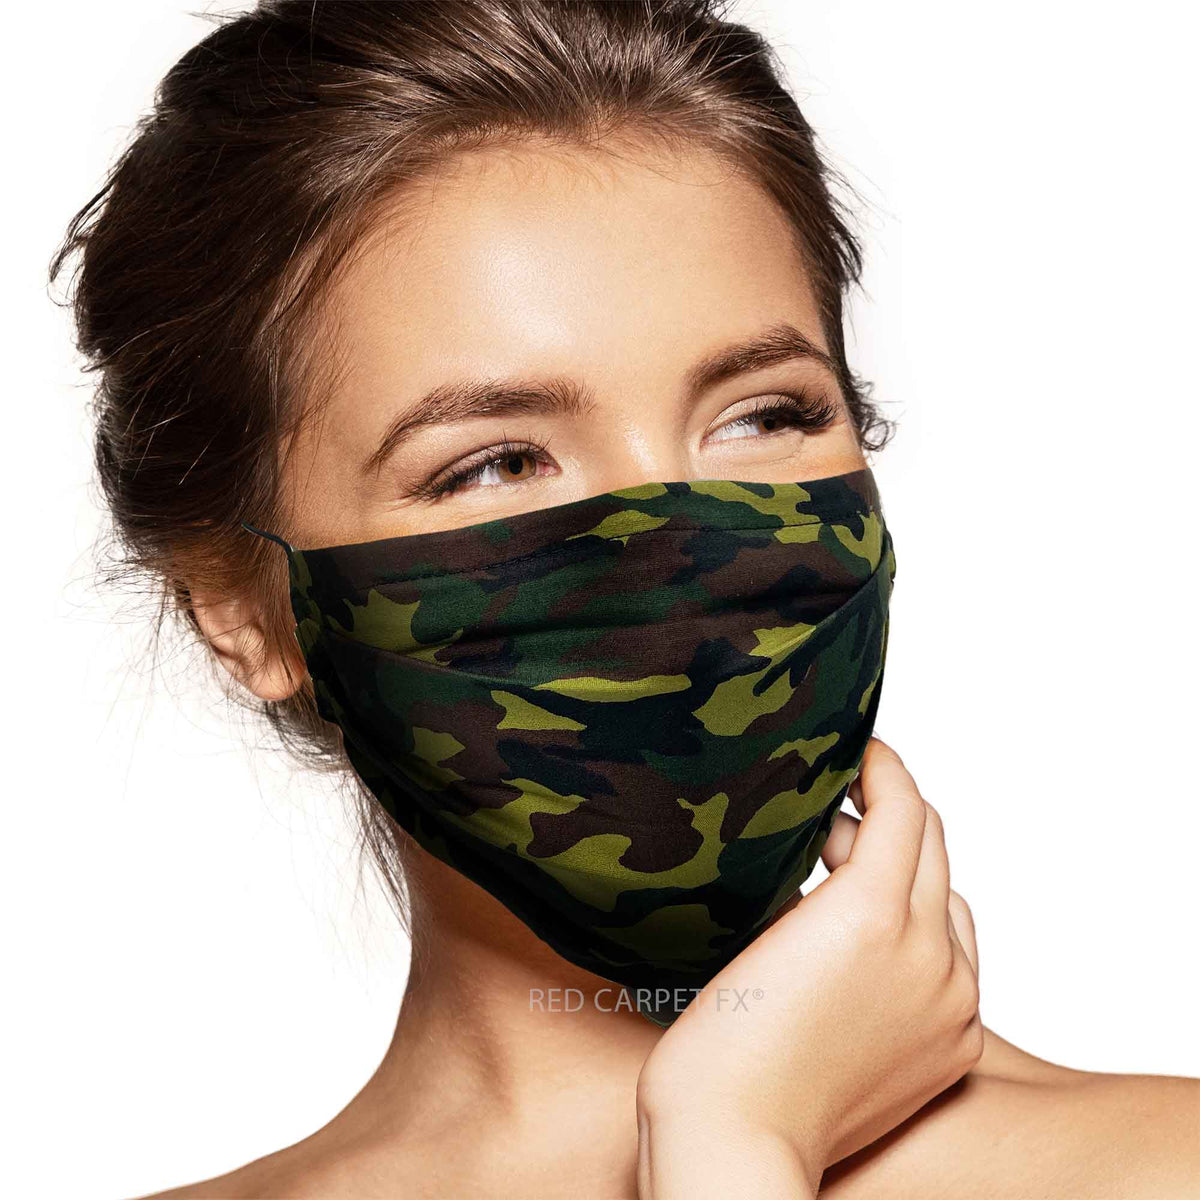 Pebbles Handmade Pleated Cotton Face Mask - Camo